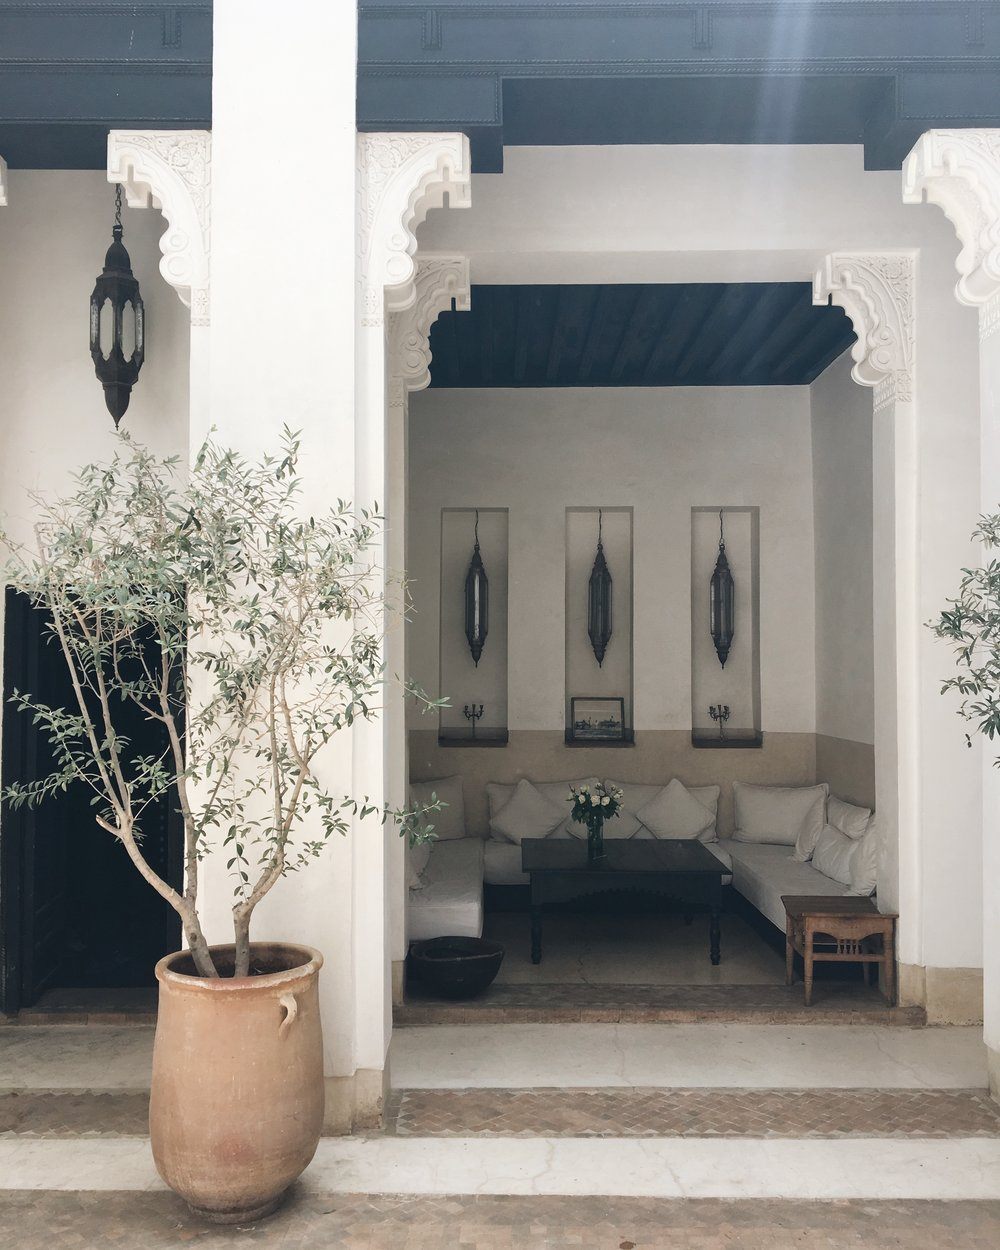 Courtyard at Riad Azzouna 13 | Marrakech